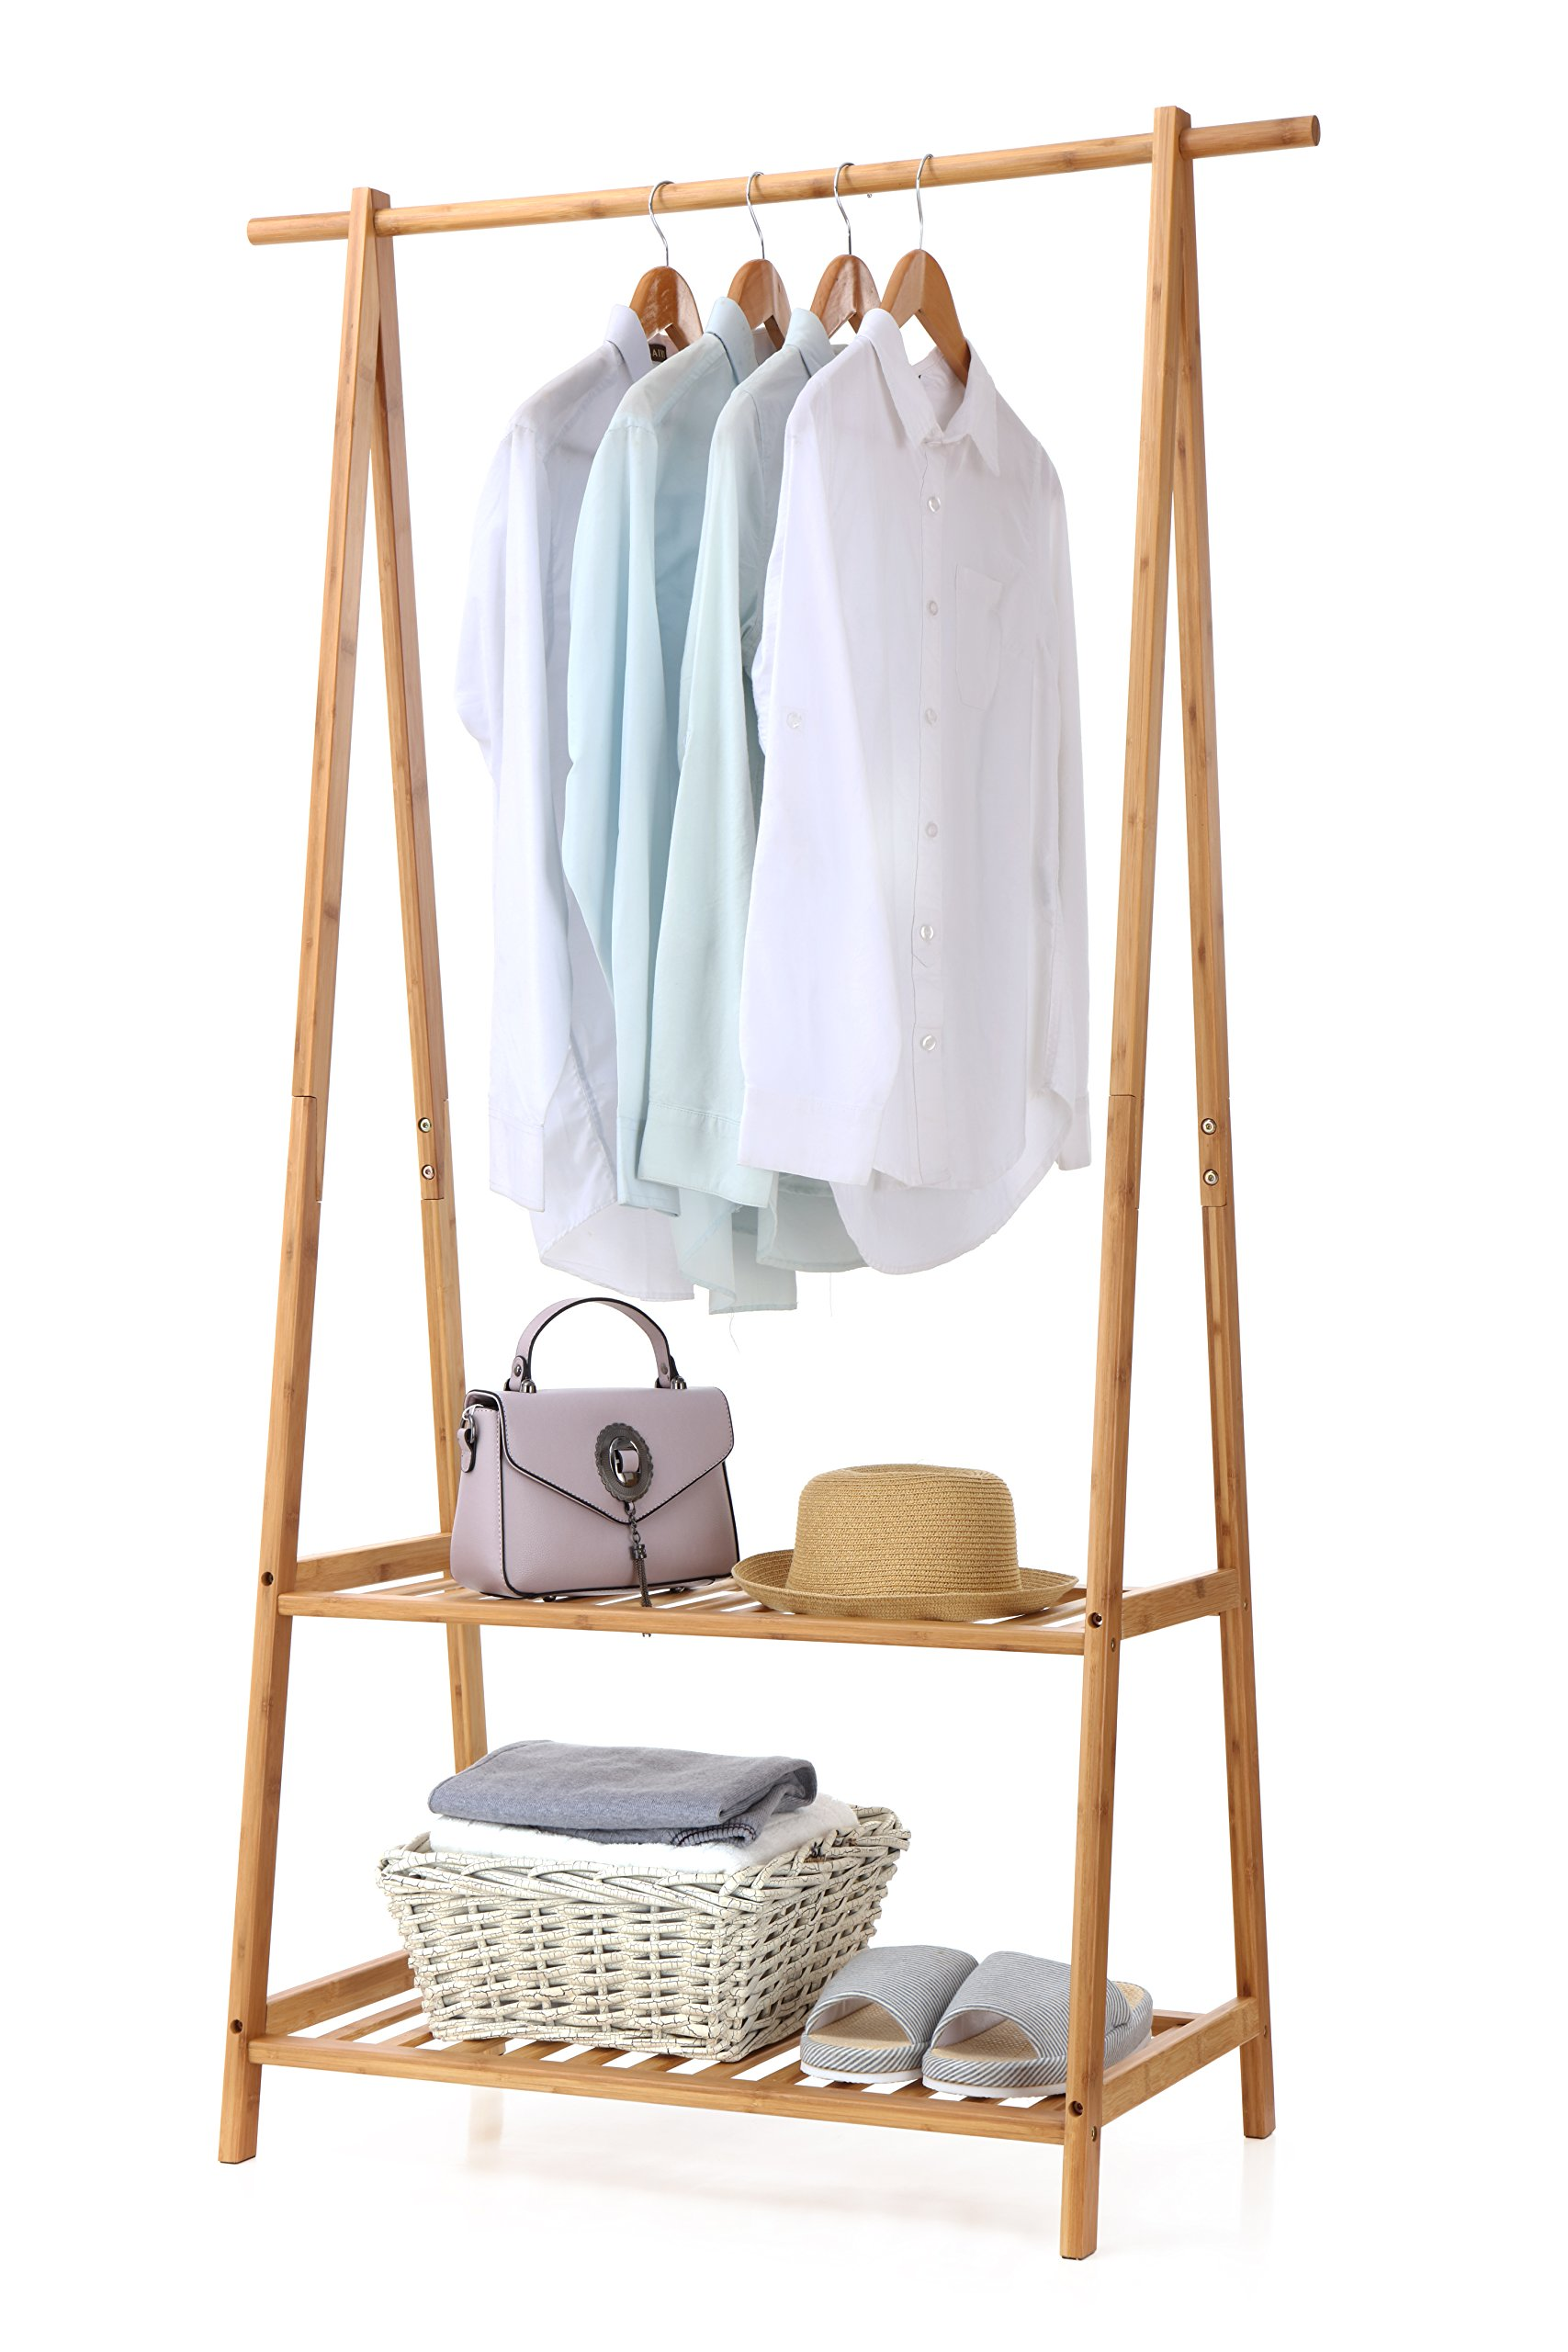 Finnhomy Bamboo Clothes Rack Portable Extra Large Garment Rack 2-Tire Storage Box Shelves for Entryway and Bed Room Patented Design